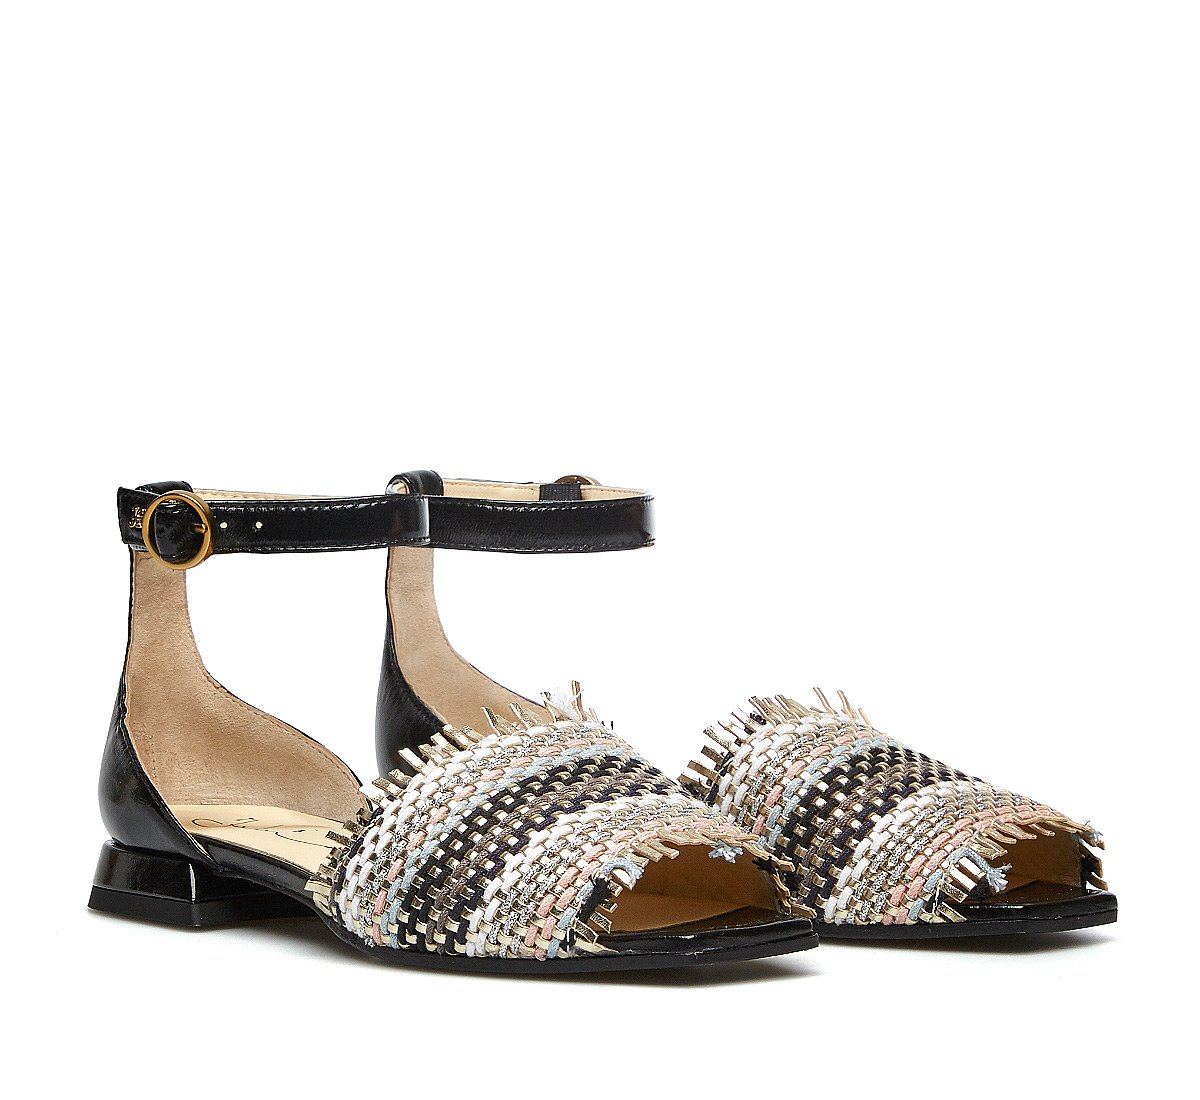 Woven fabric sandals